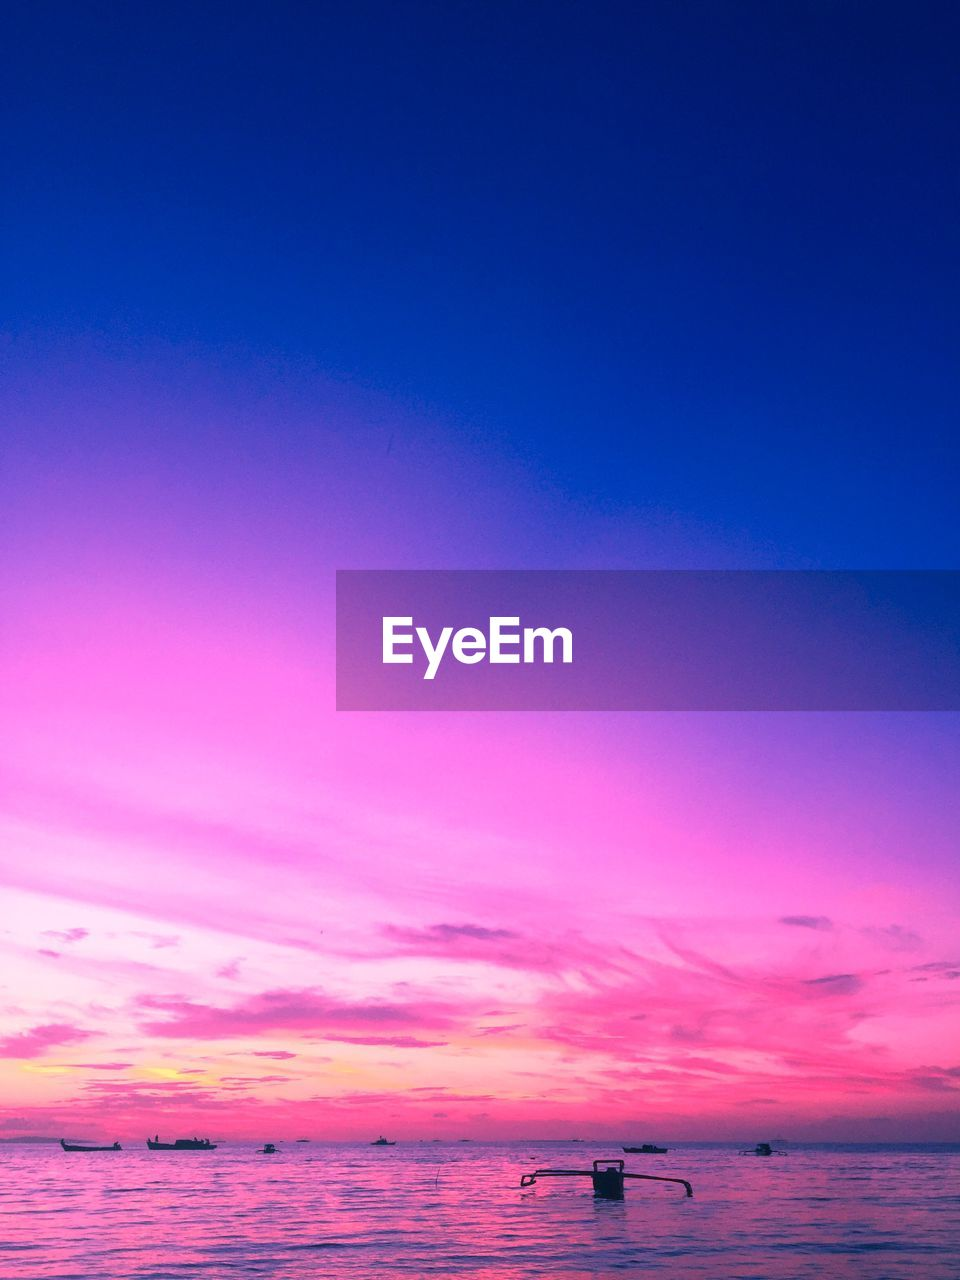 sky, water, sunset, sea, beauty in nature, scenics - nature, horizon over water, horizon, cloud - sky, beach, tranquility, tranquil scene, nature, purple, pink color, land, idyllic, blue, orange color, no people, outdoors, romantic sky